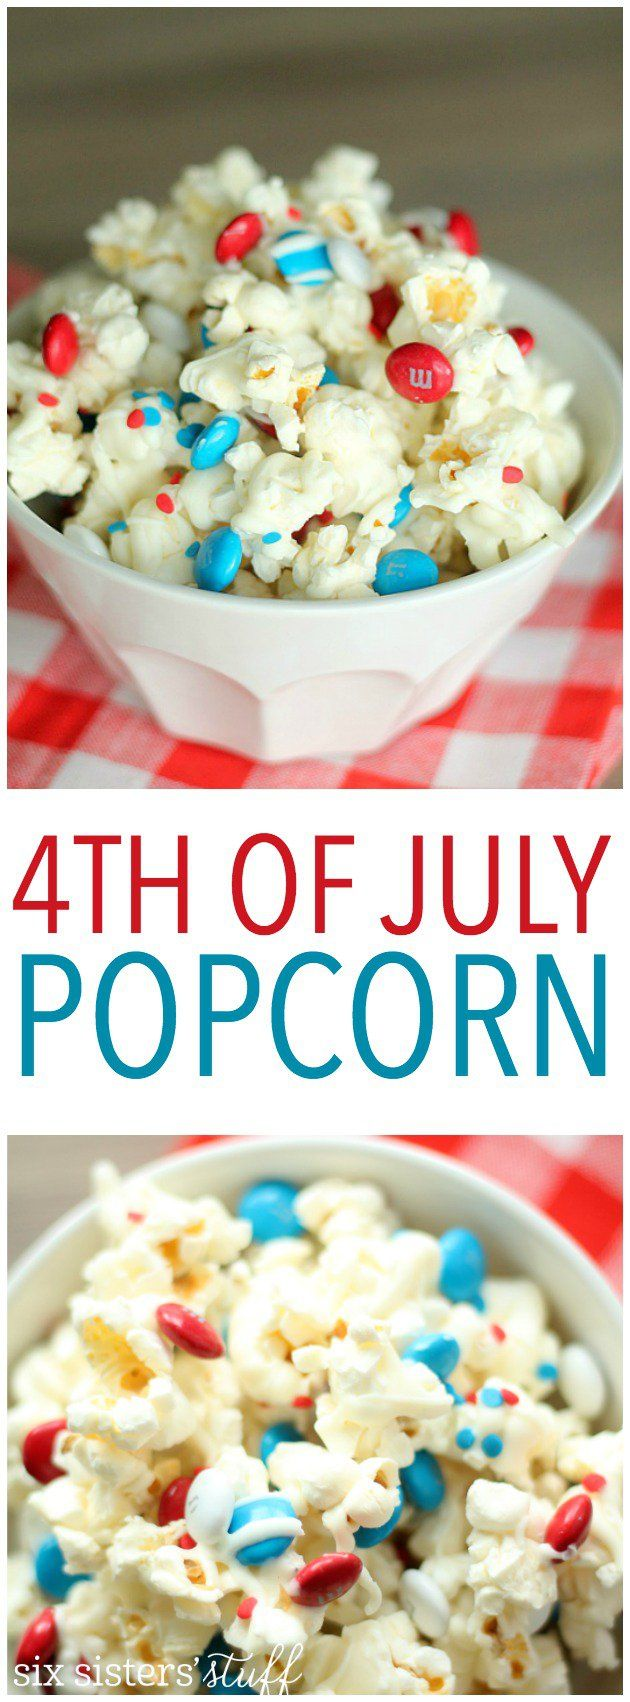 Cute and delicious 4th of July patriotic popcorn from SixSistersStuff.com